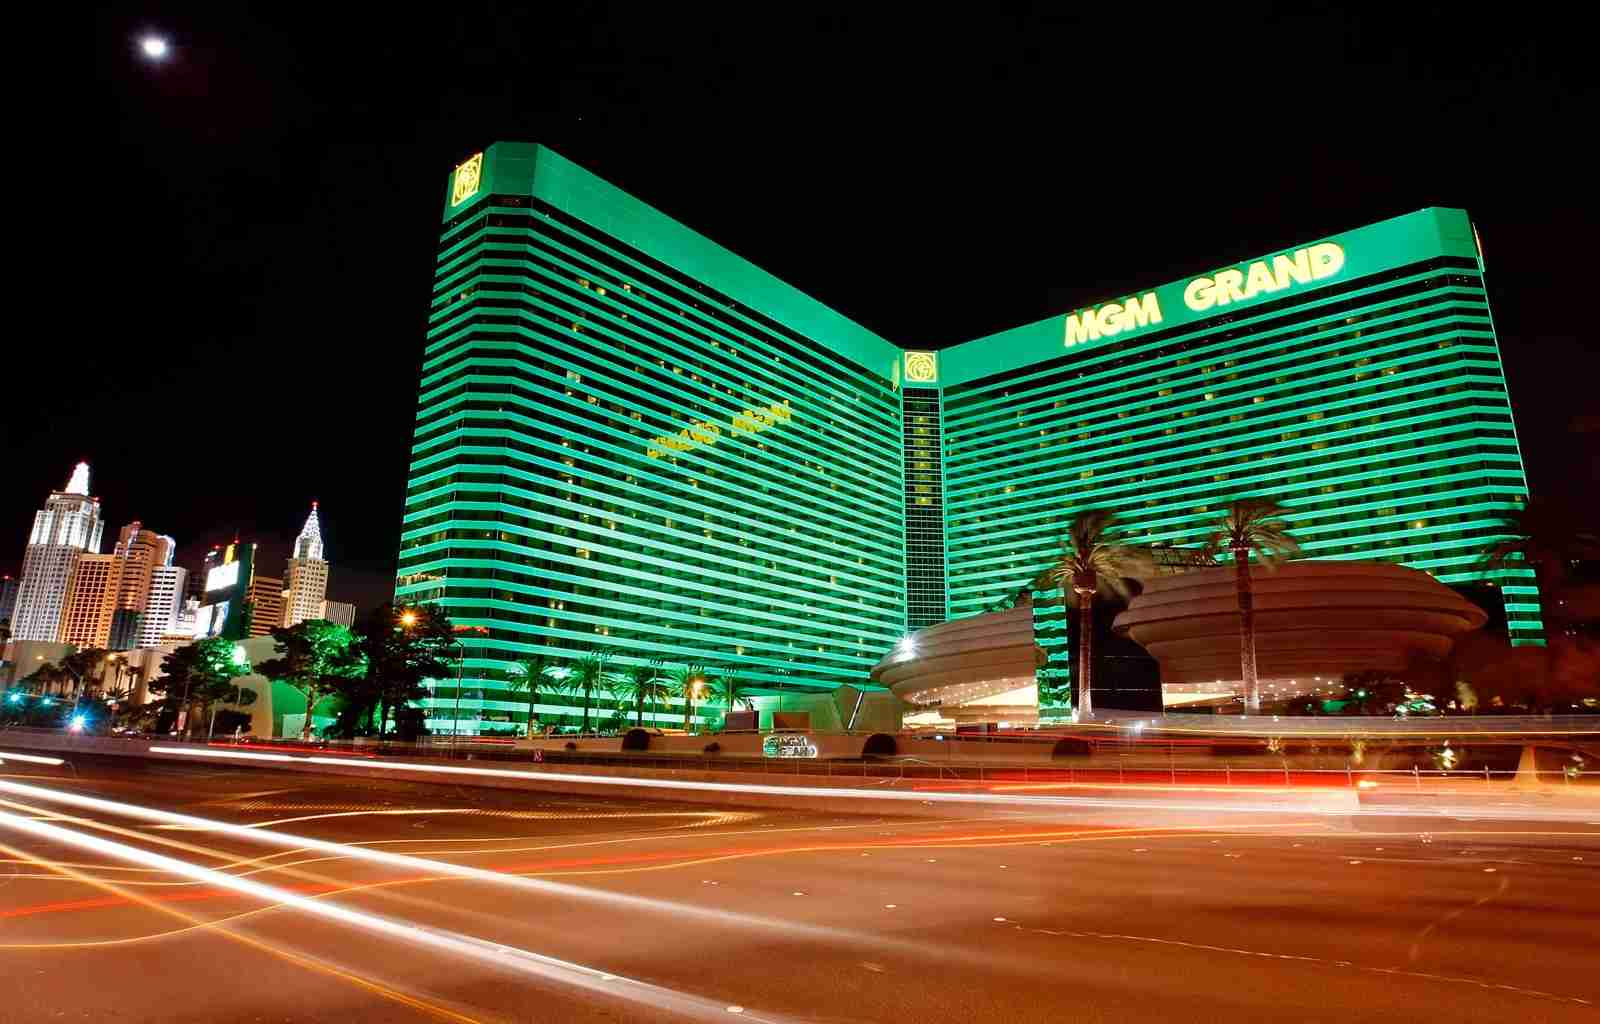 The MGM Grand Hotel (Photo by Ethan Miller/Getty Images)